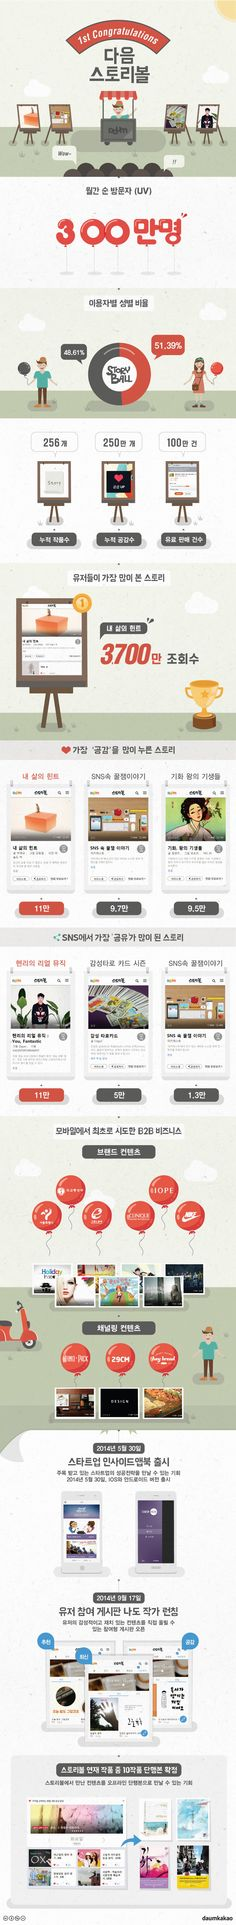 250만 공감 얻은 스토리볼 1년간의 기록에 관한 인포그래픽 // Hi Friends, look what I just found on #web #design! Make sure to follow us @moirestudiosjkt to see more pins like this | Moire Studios is a thriving website and graphic design studio based in Jakarta, Indonesia.